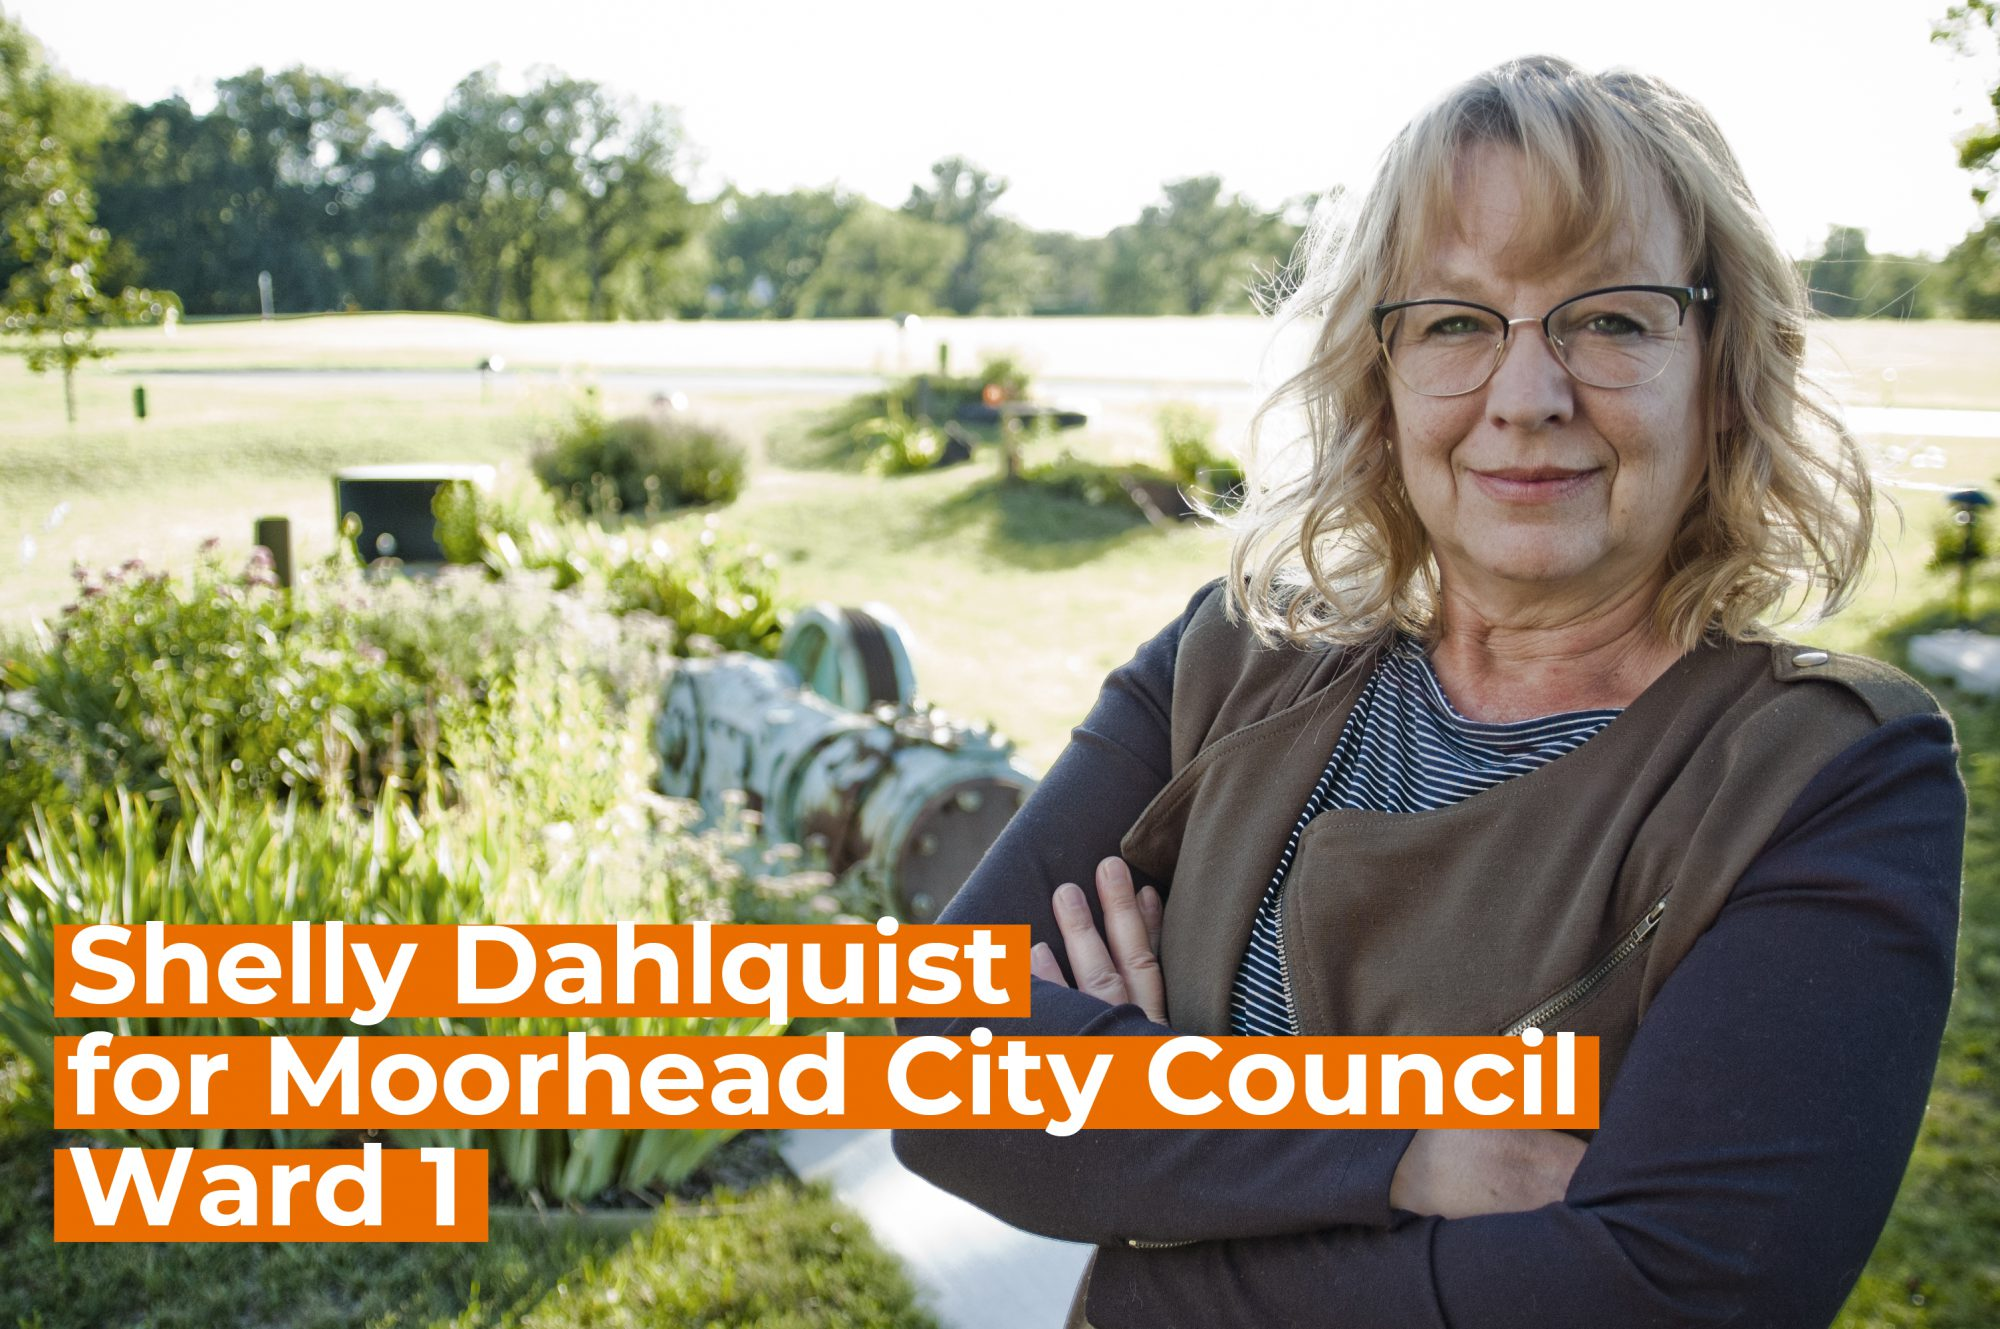 Shelly Dahlquist for Moorhead City Council Ward 1